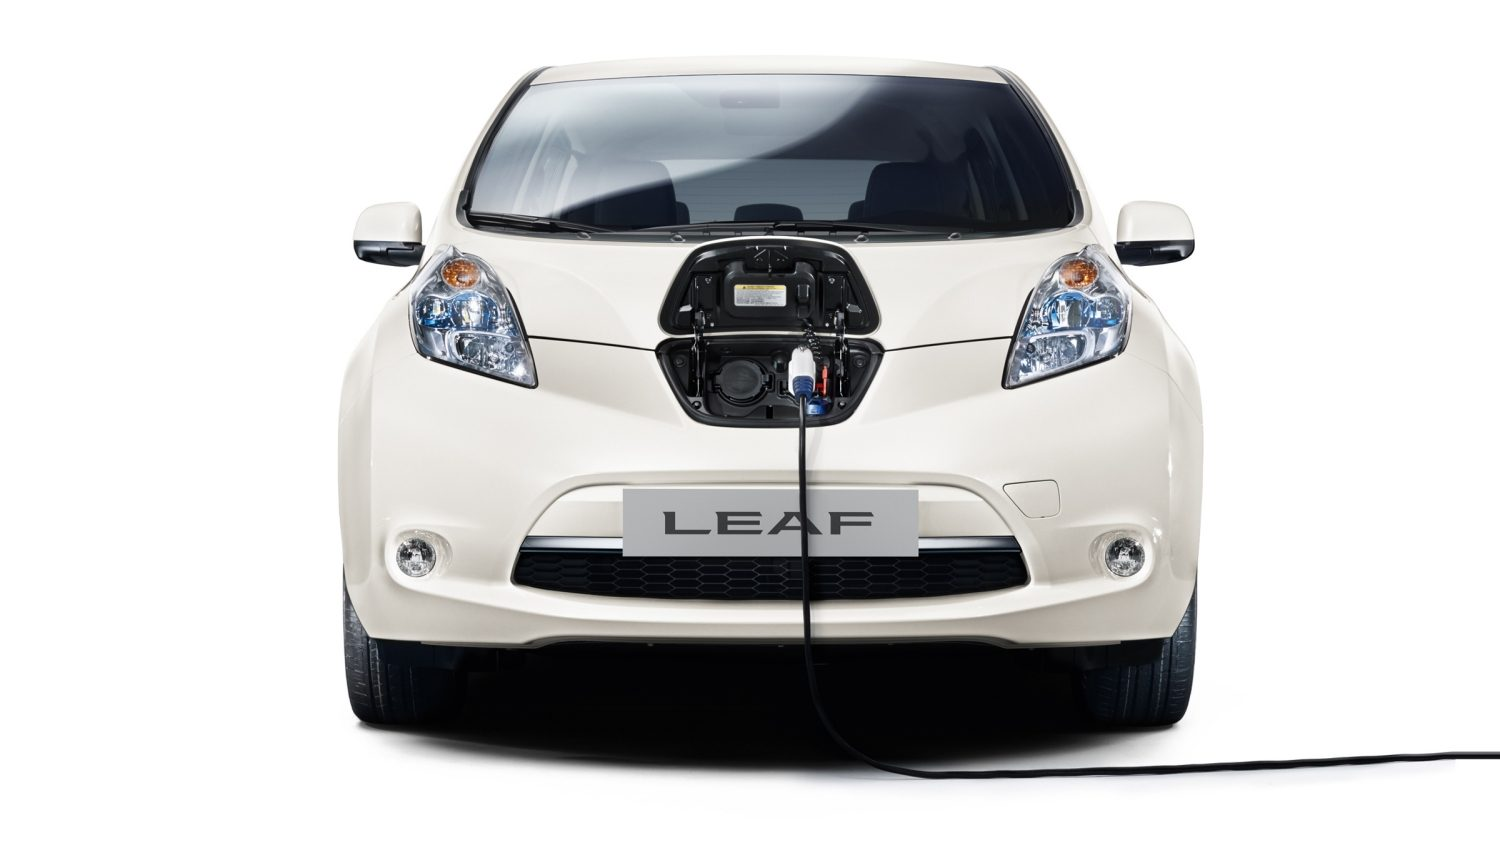 Nissan LEAF - Veicolo in carica